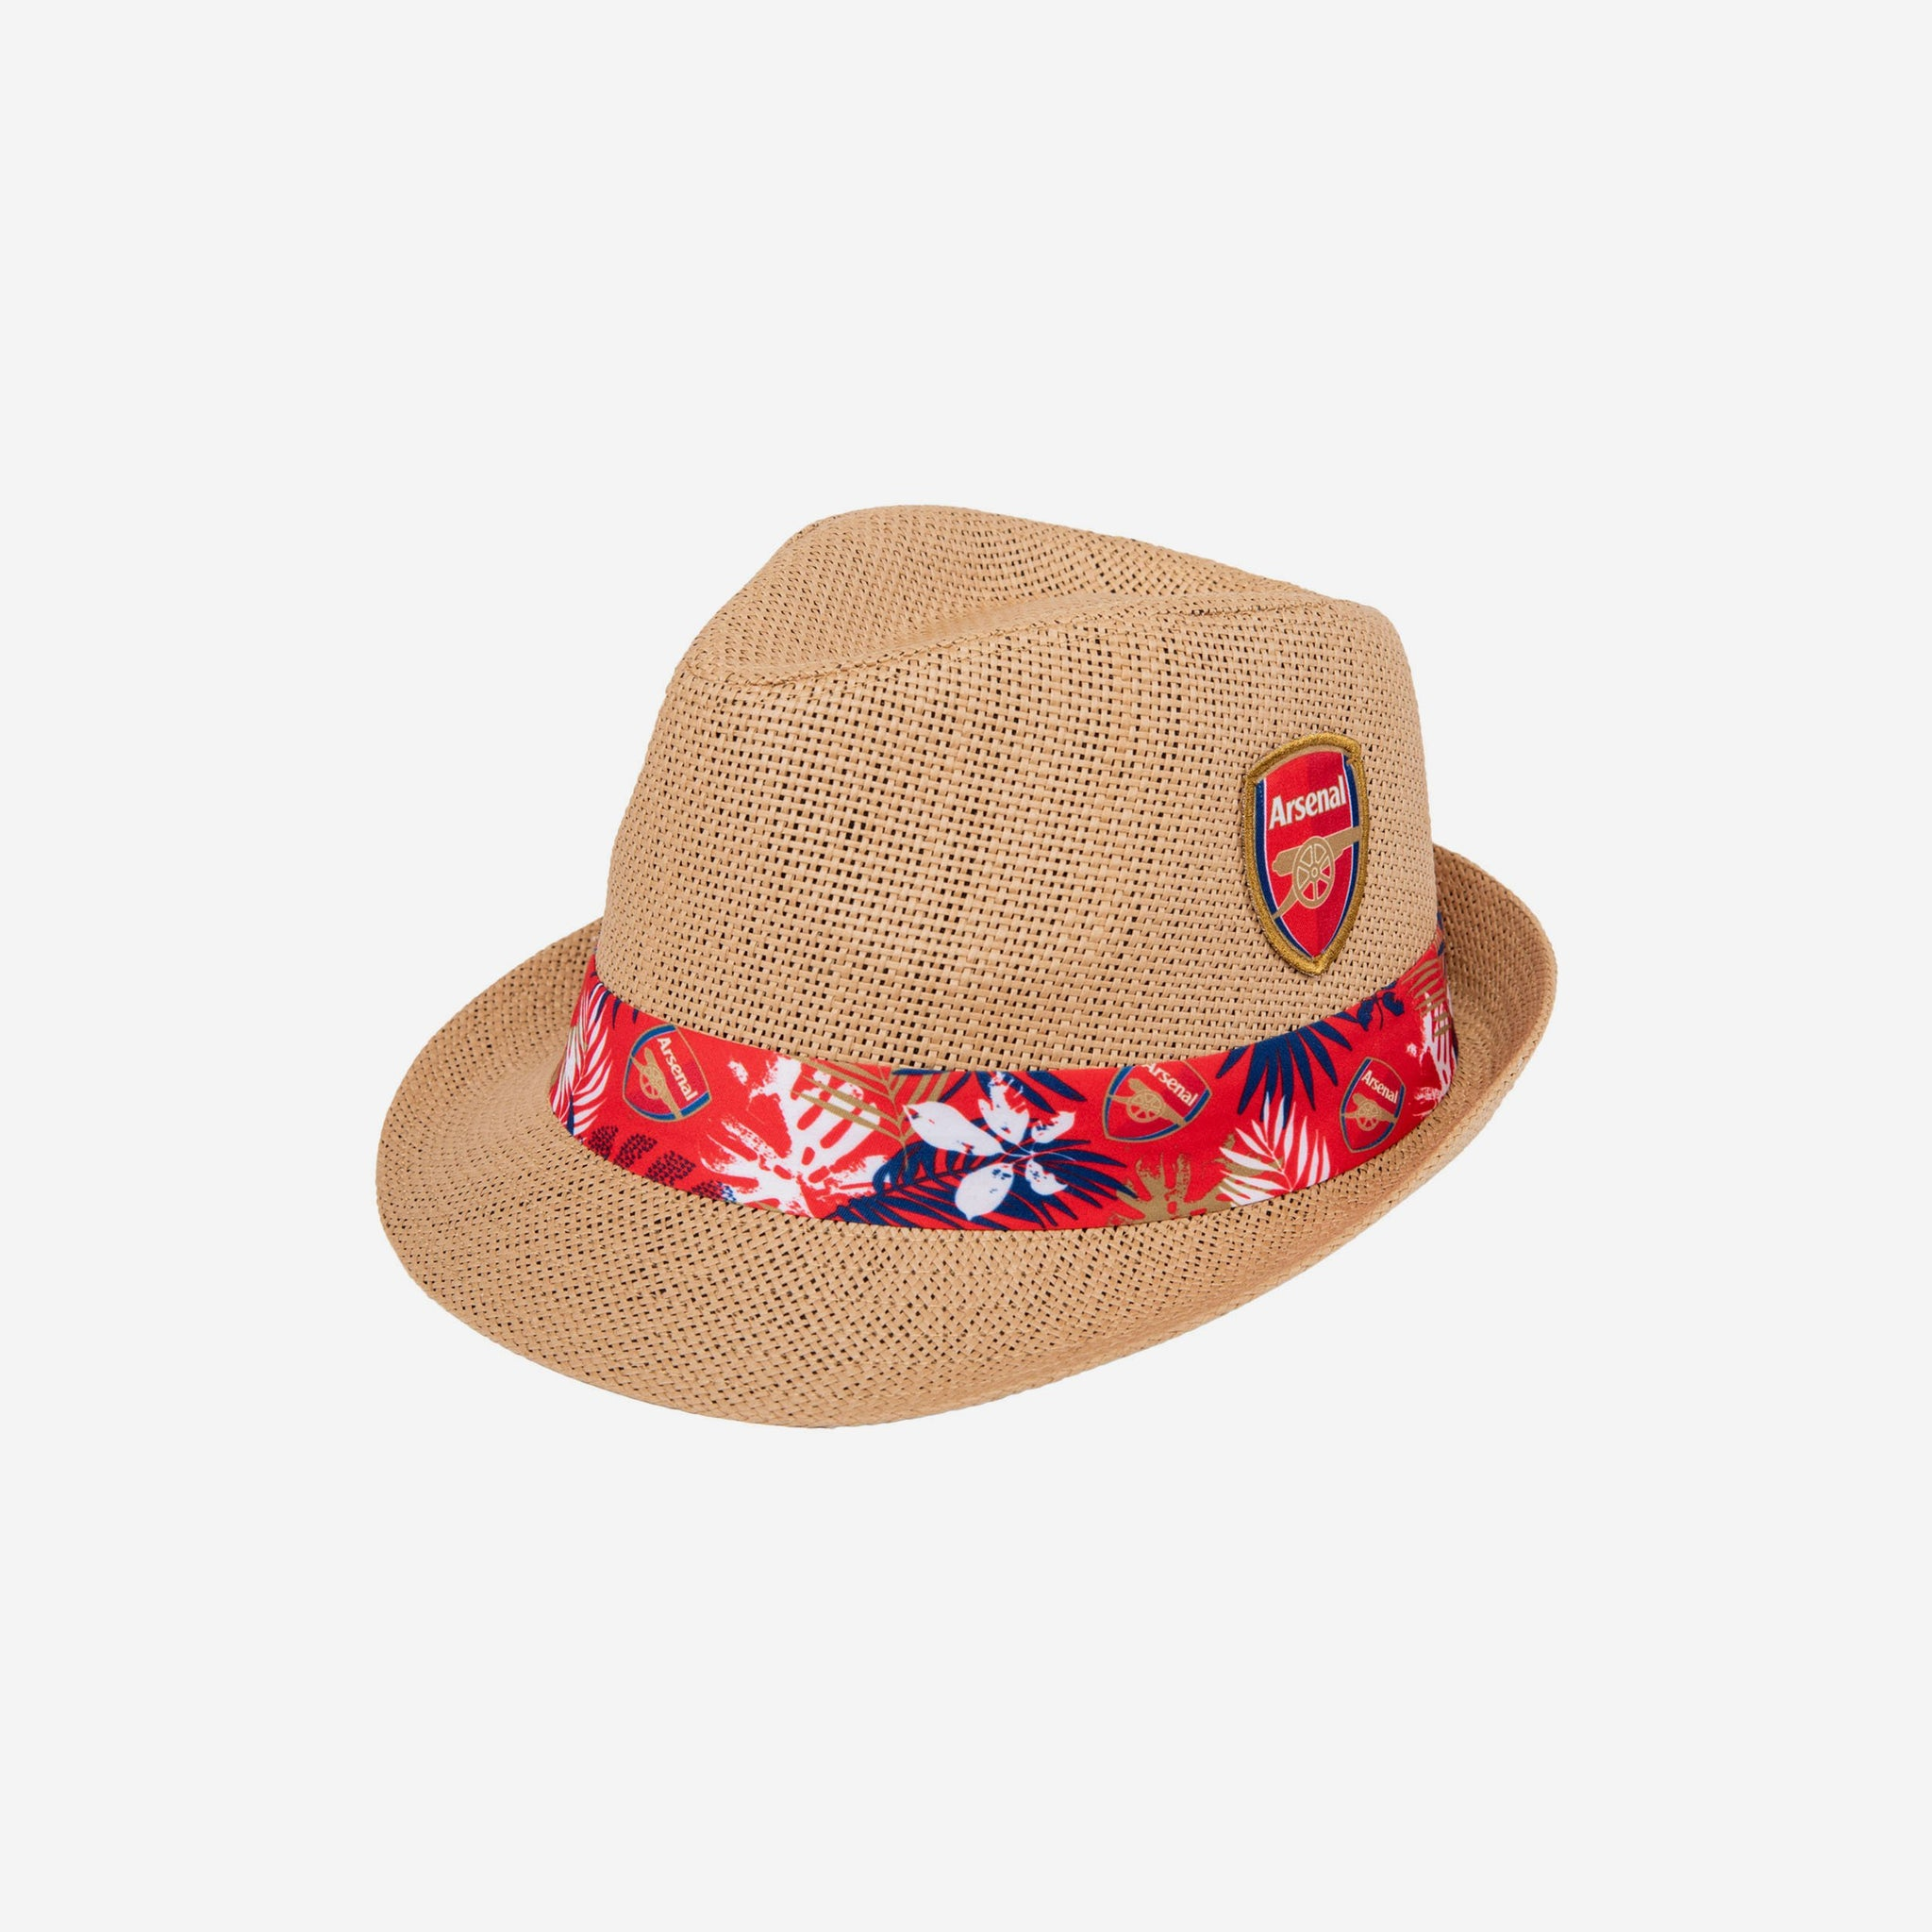 Accessories - Hats & Caps - Straw Hats